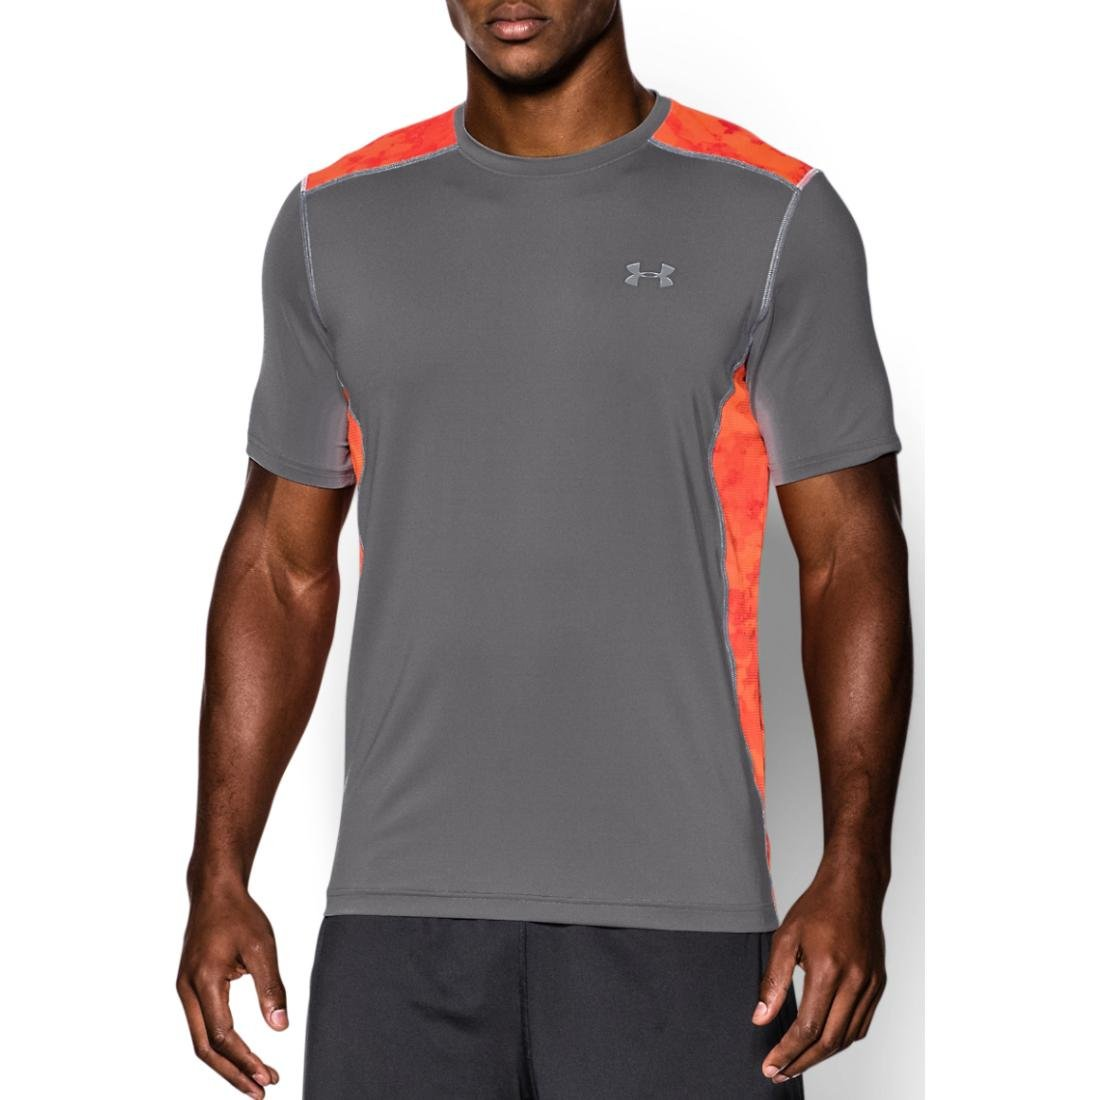 (アンダーアーマー) UNDER ARMOUR ヒットヒートギアSS(トレーニング/Tシャツ/MEN)[1257466] B00KXAFYJE Large|Graphite/Bolt Orange Graphite/Bolt Orange Large